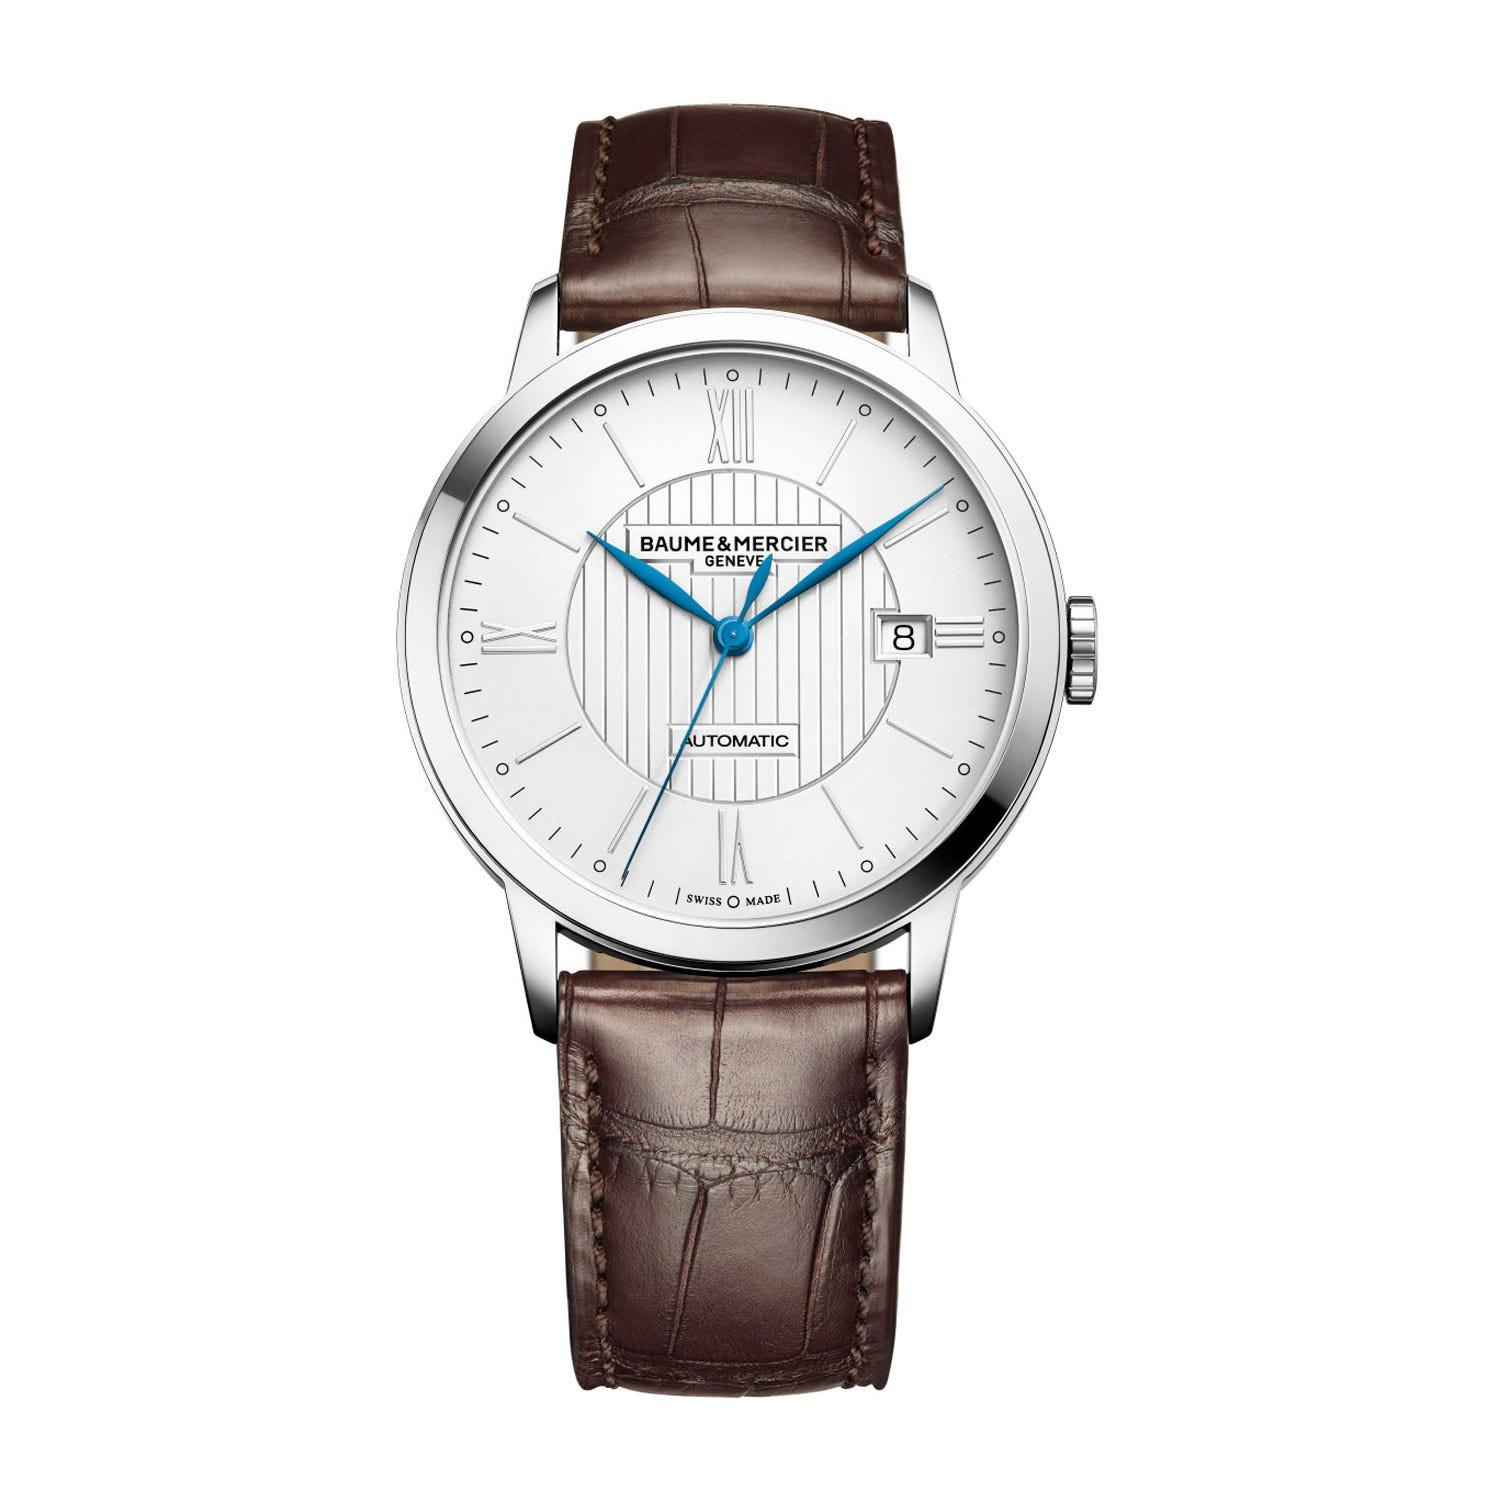 Baume & Mercier Classima Men's Silver Dial Brown Leather Strap Watch